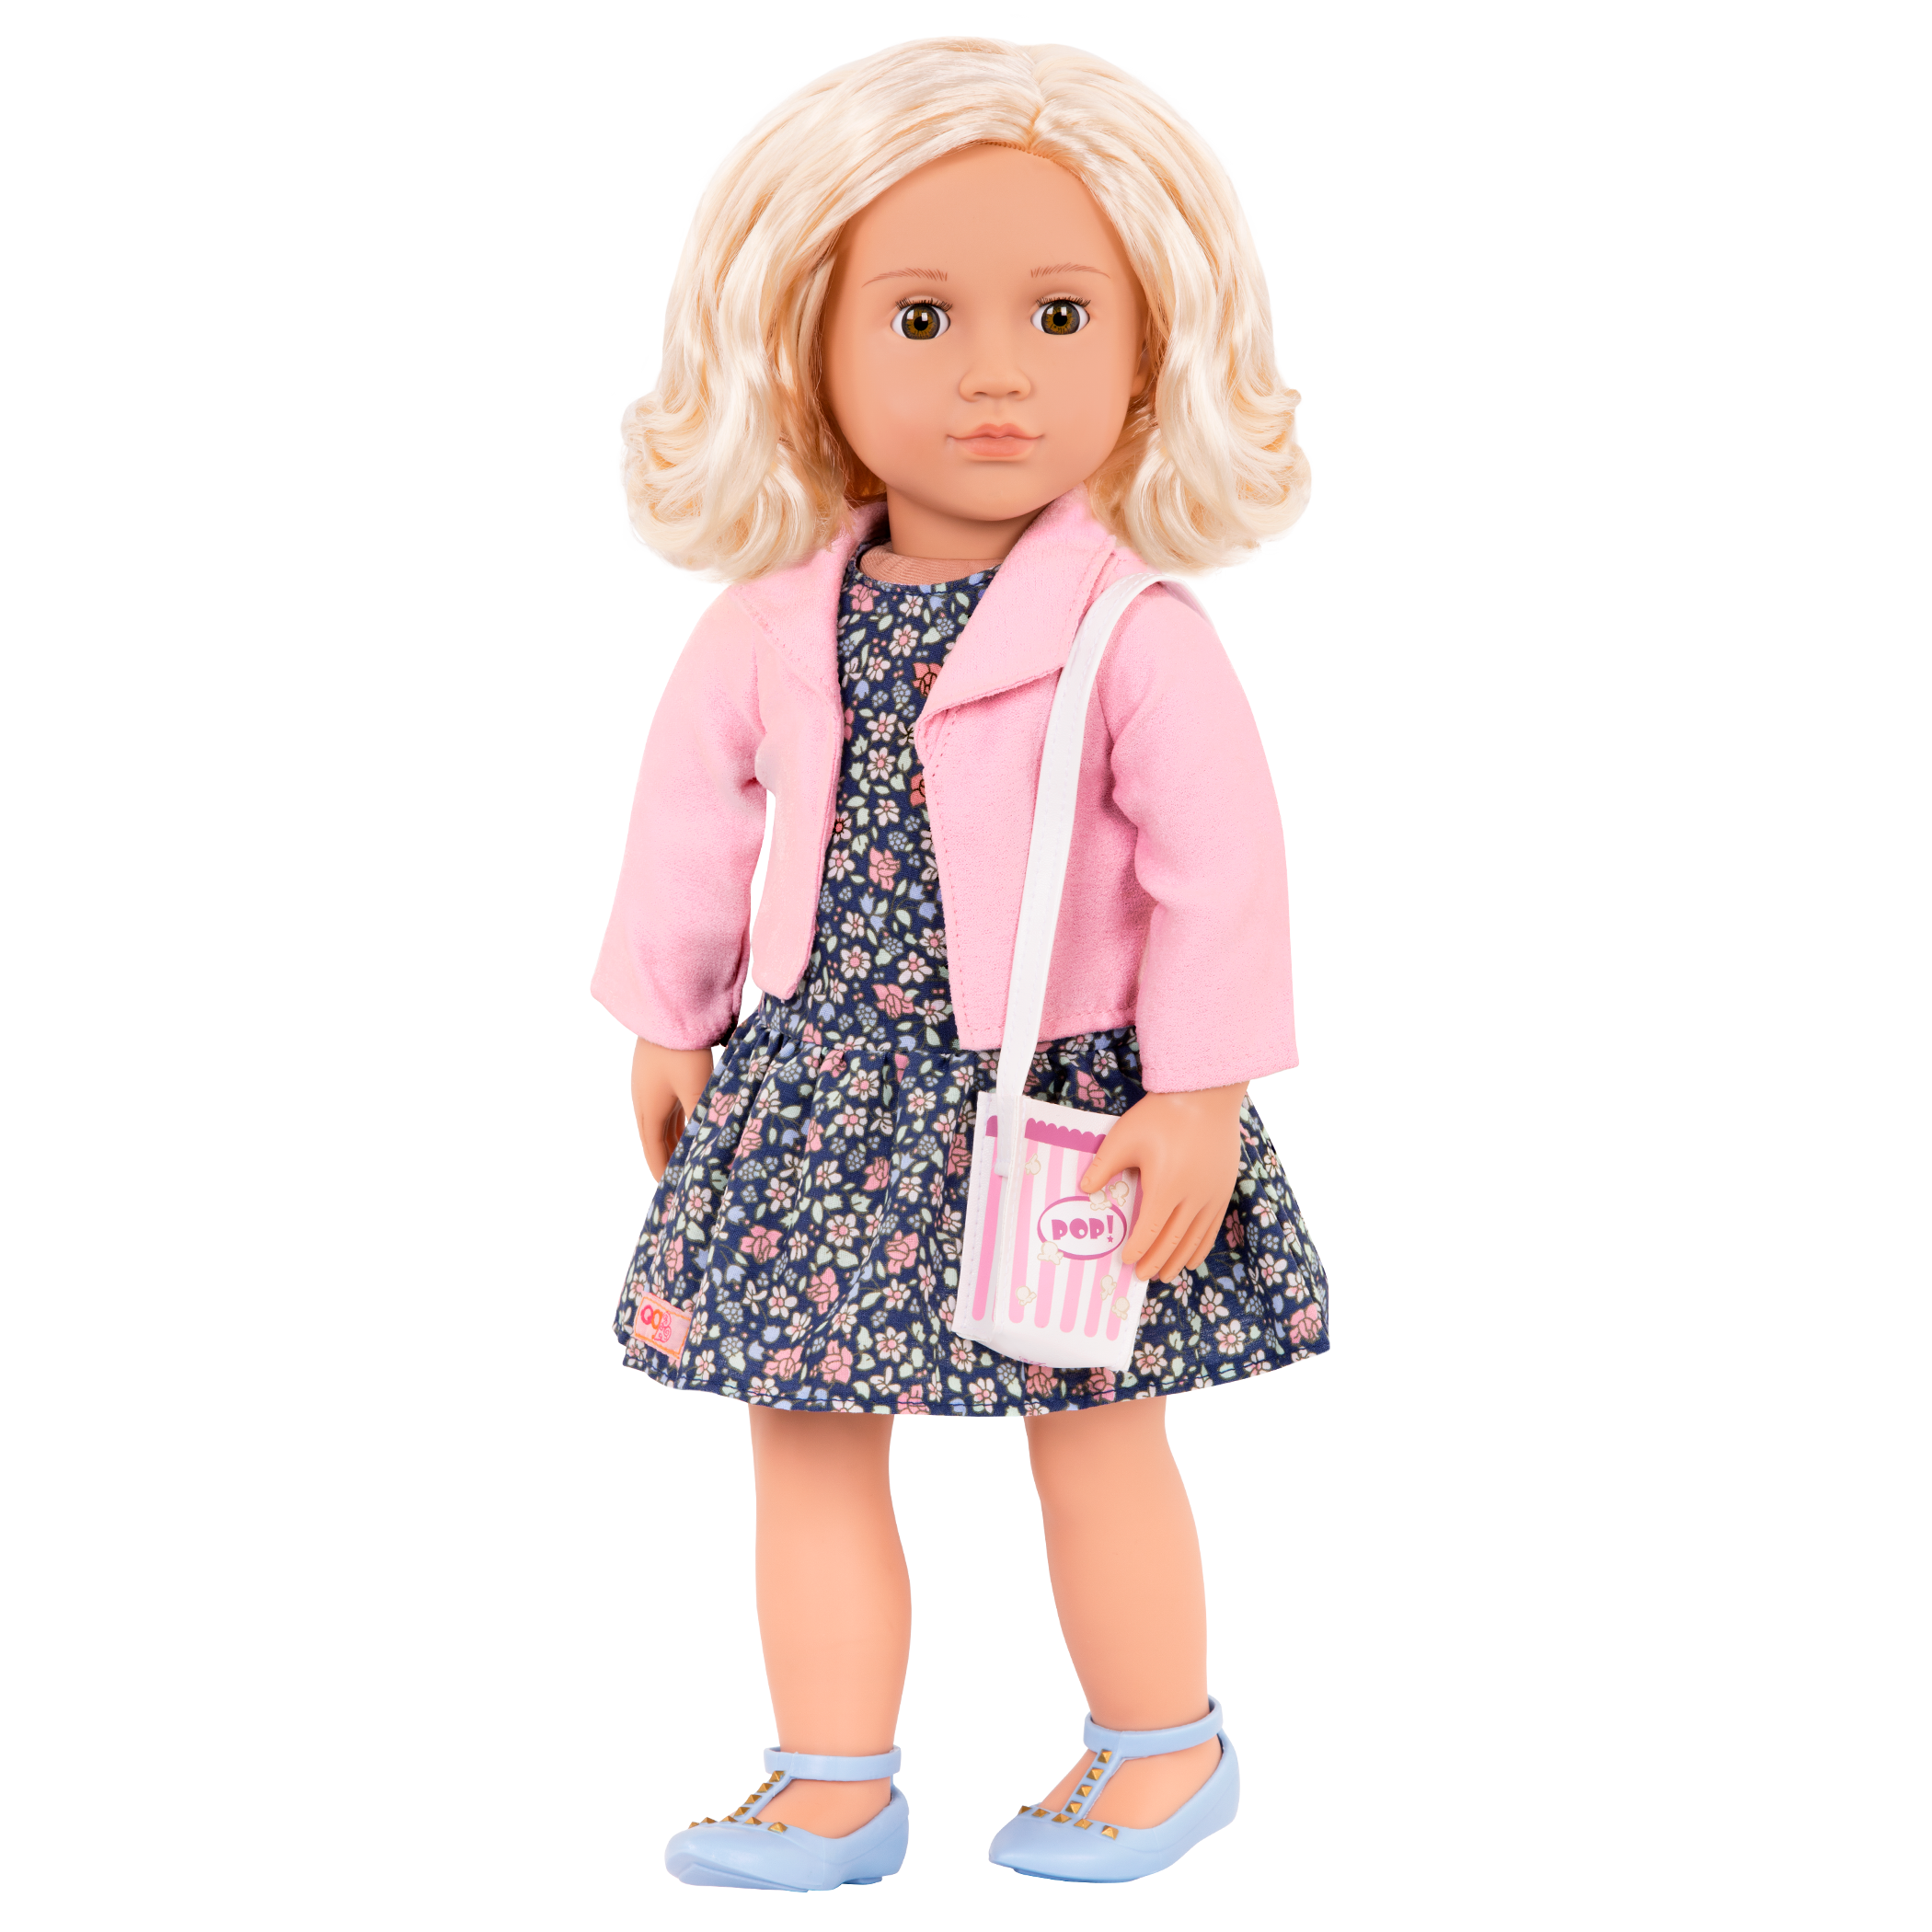 Popcorn Pizazz - 18-inch Doll Outfit with Ivory wearing jacket